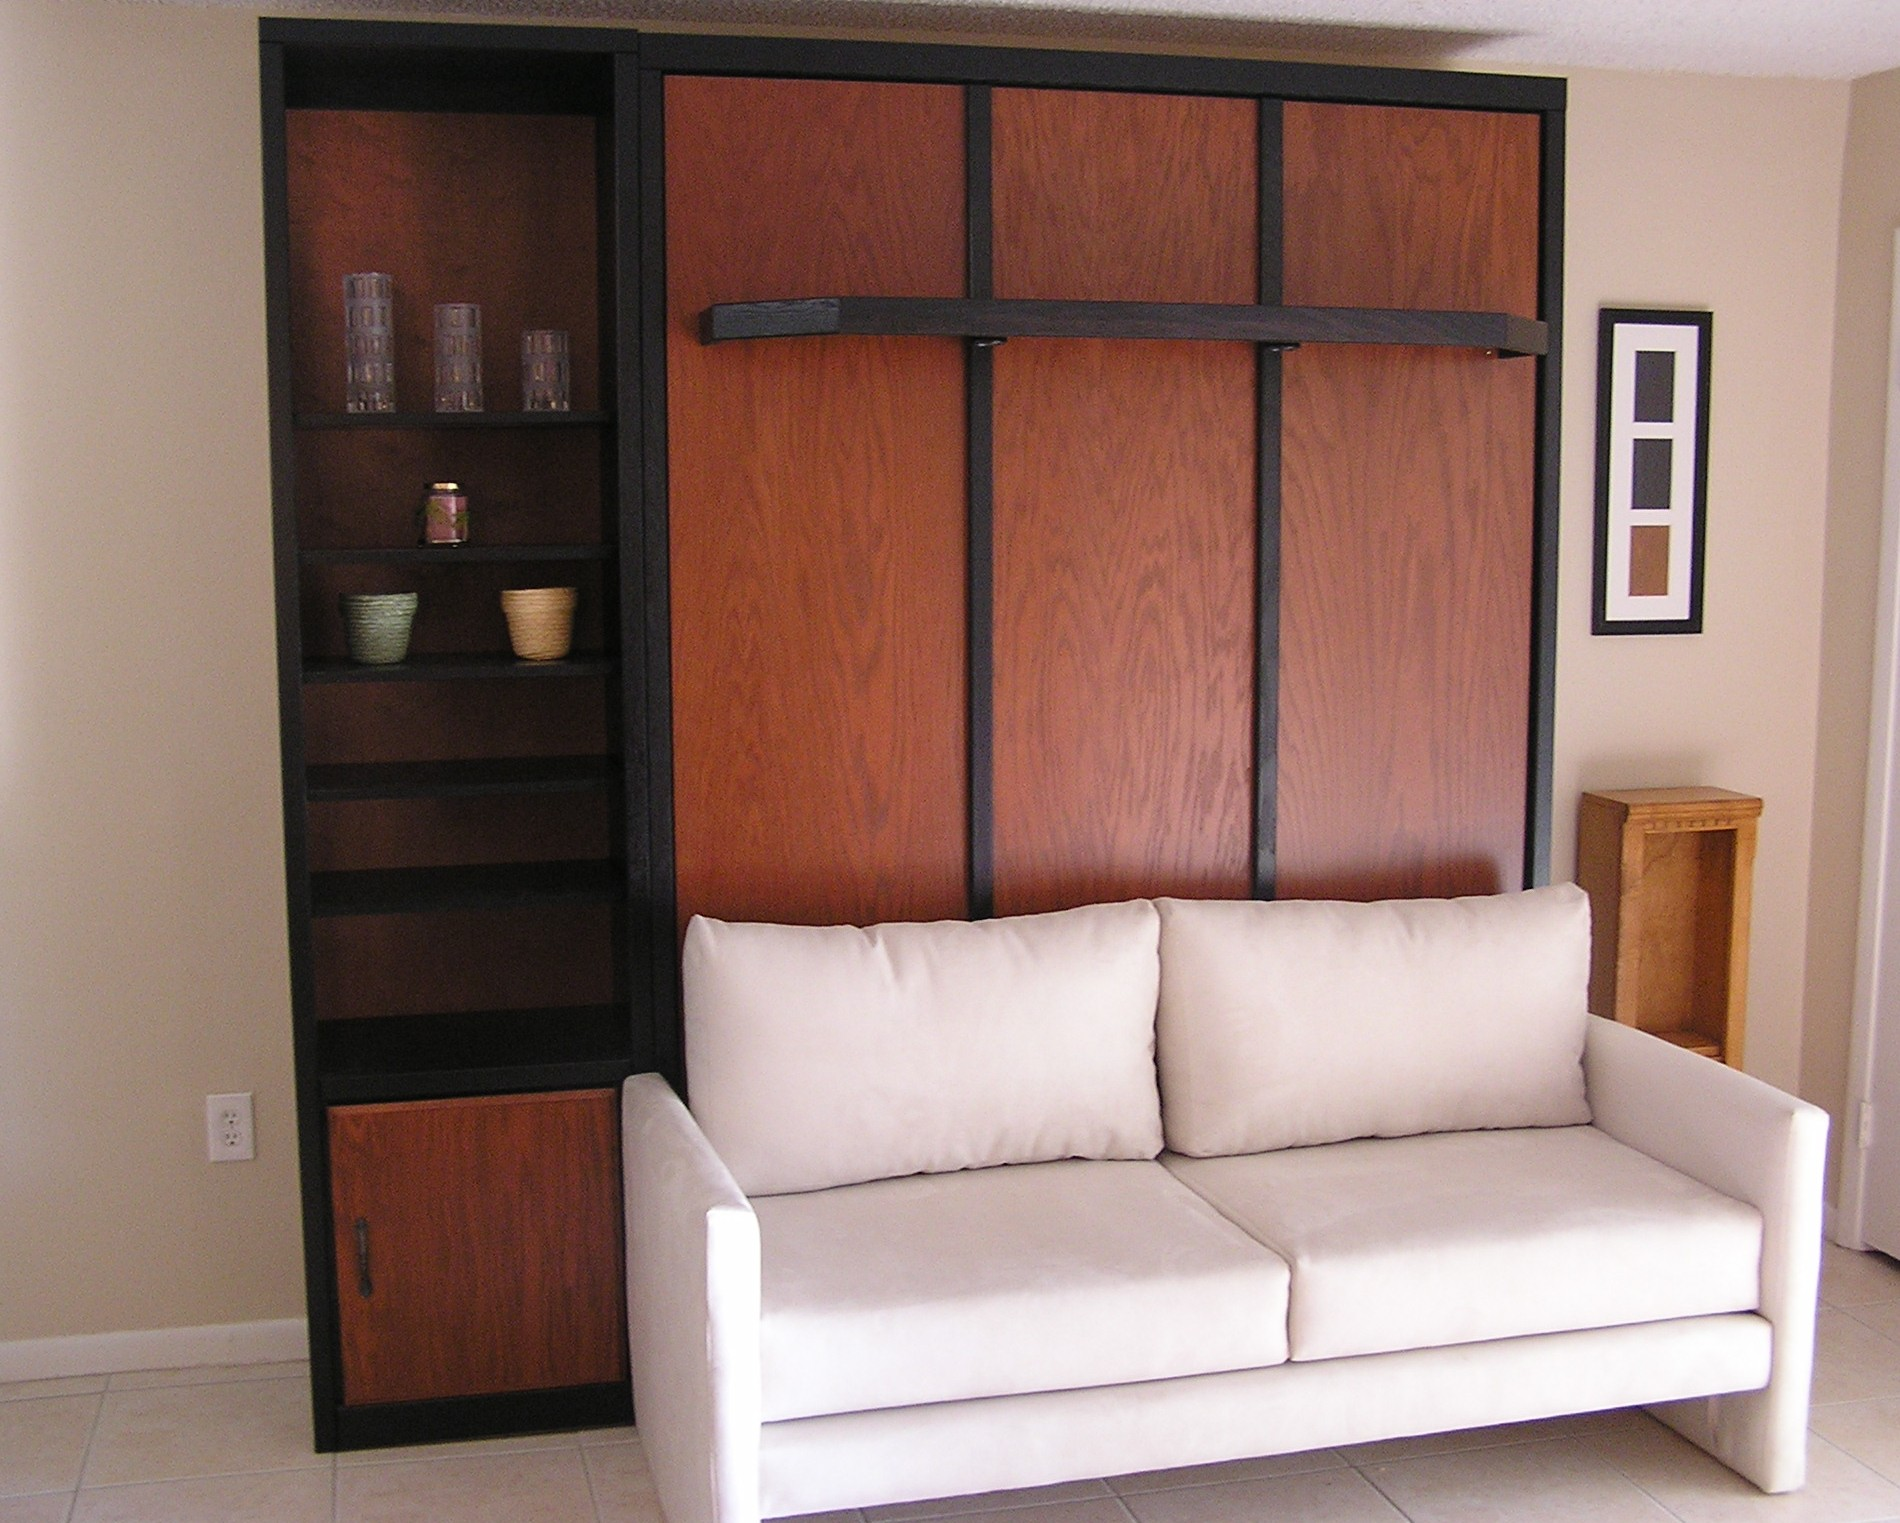 Custom murphy beds edmonton wall beds canada custom wall beds - Designer Wall Beds Mobile Bed Wall Bed Design For Small Bedroom Designs My Image My Image